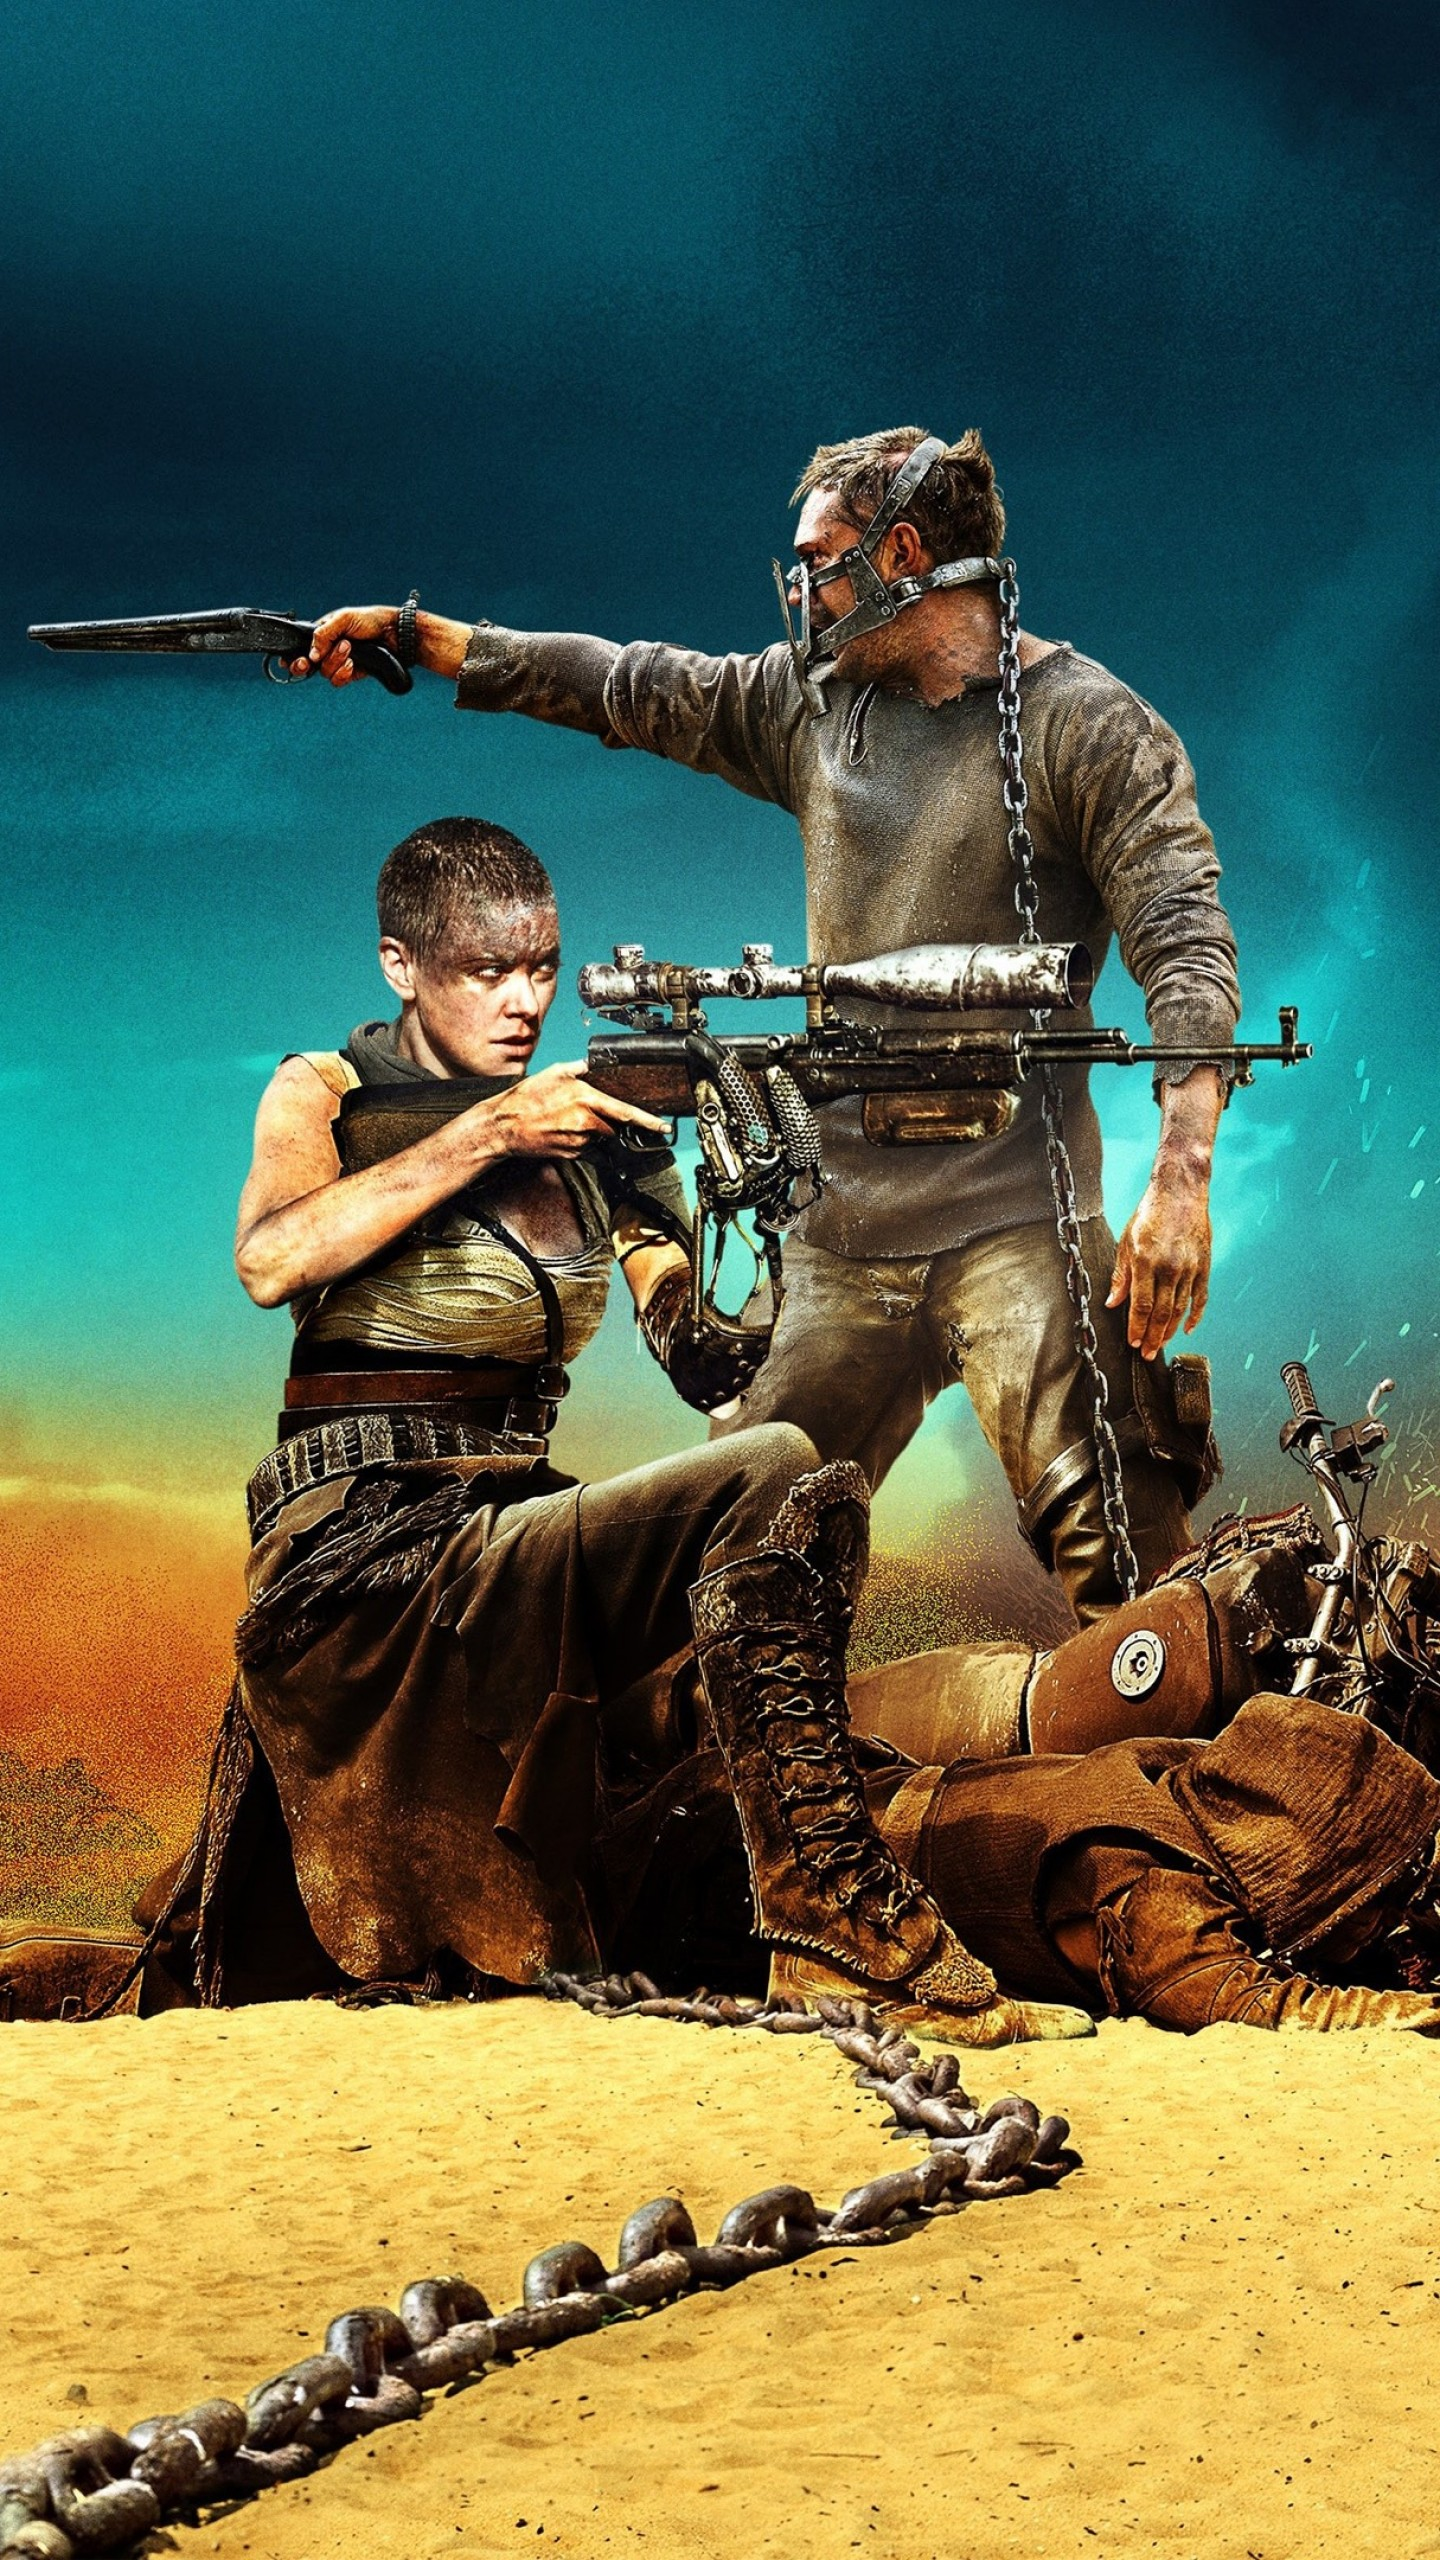 Wallpaper Mad Max Fury Road Best Movies Of 2015 Tom